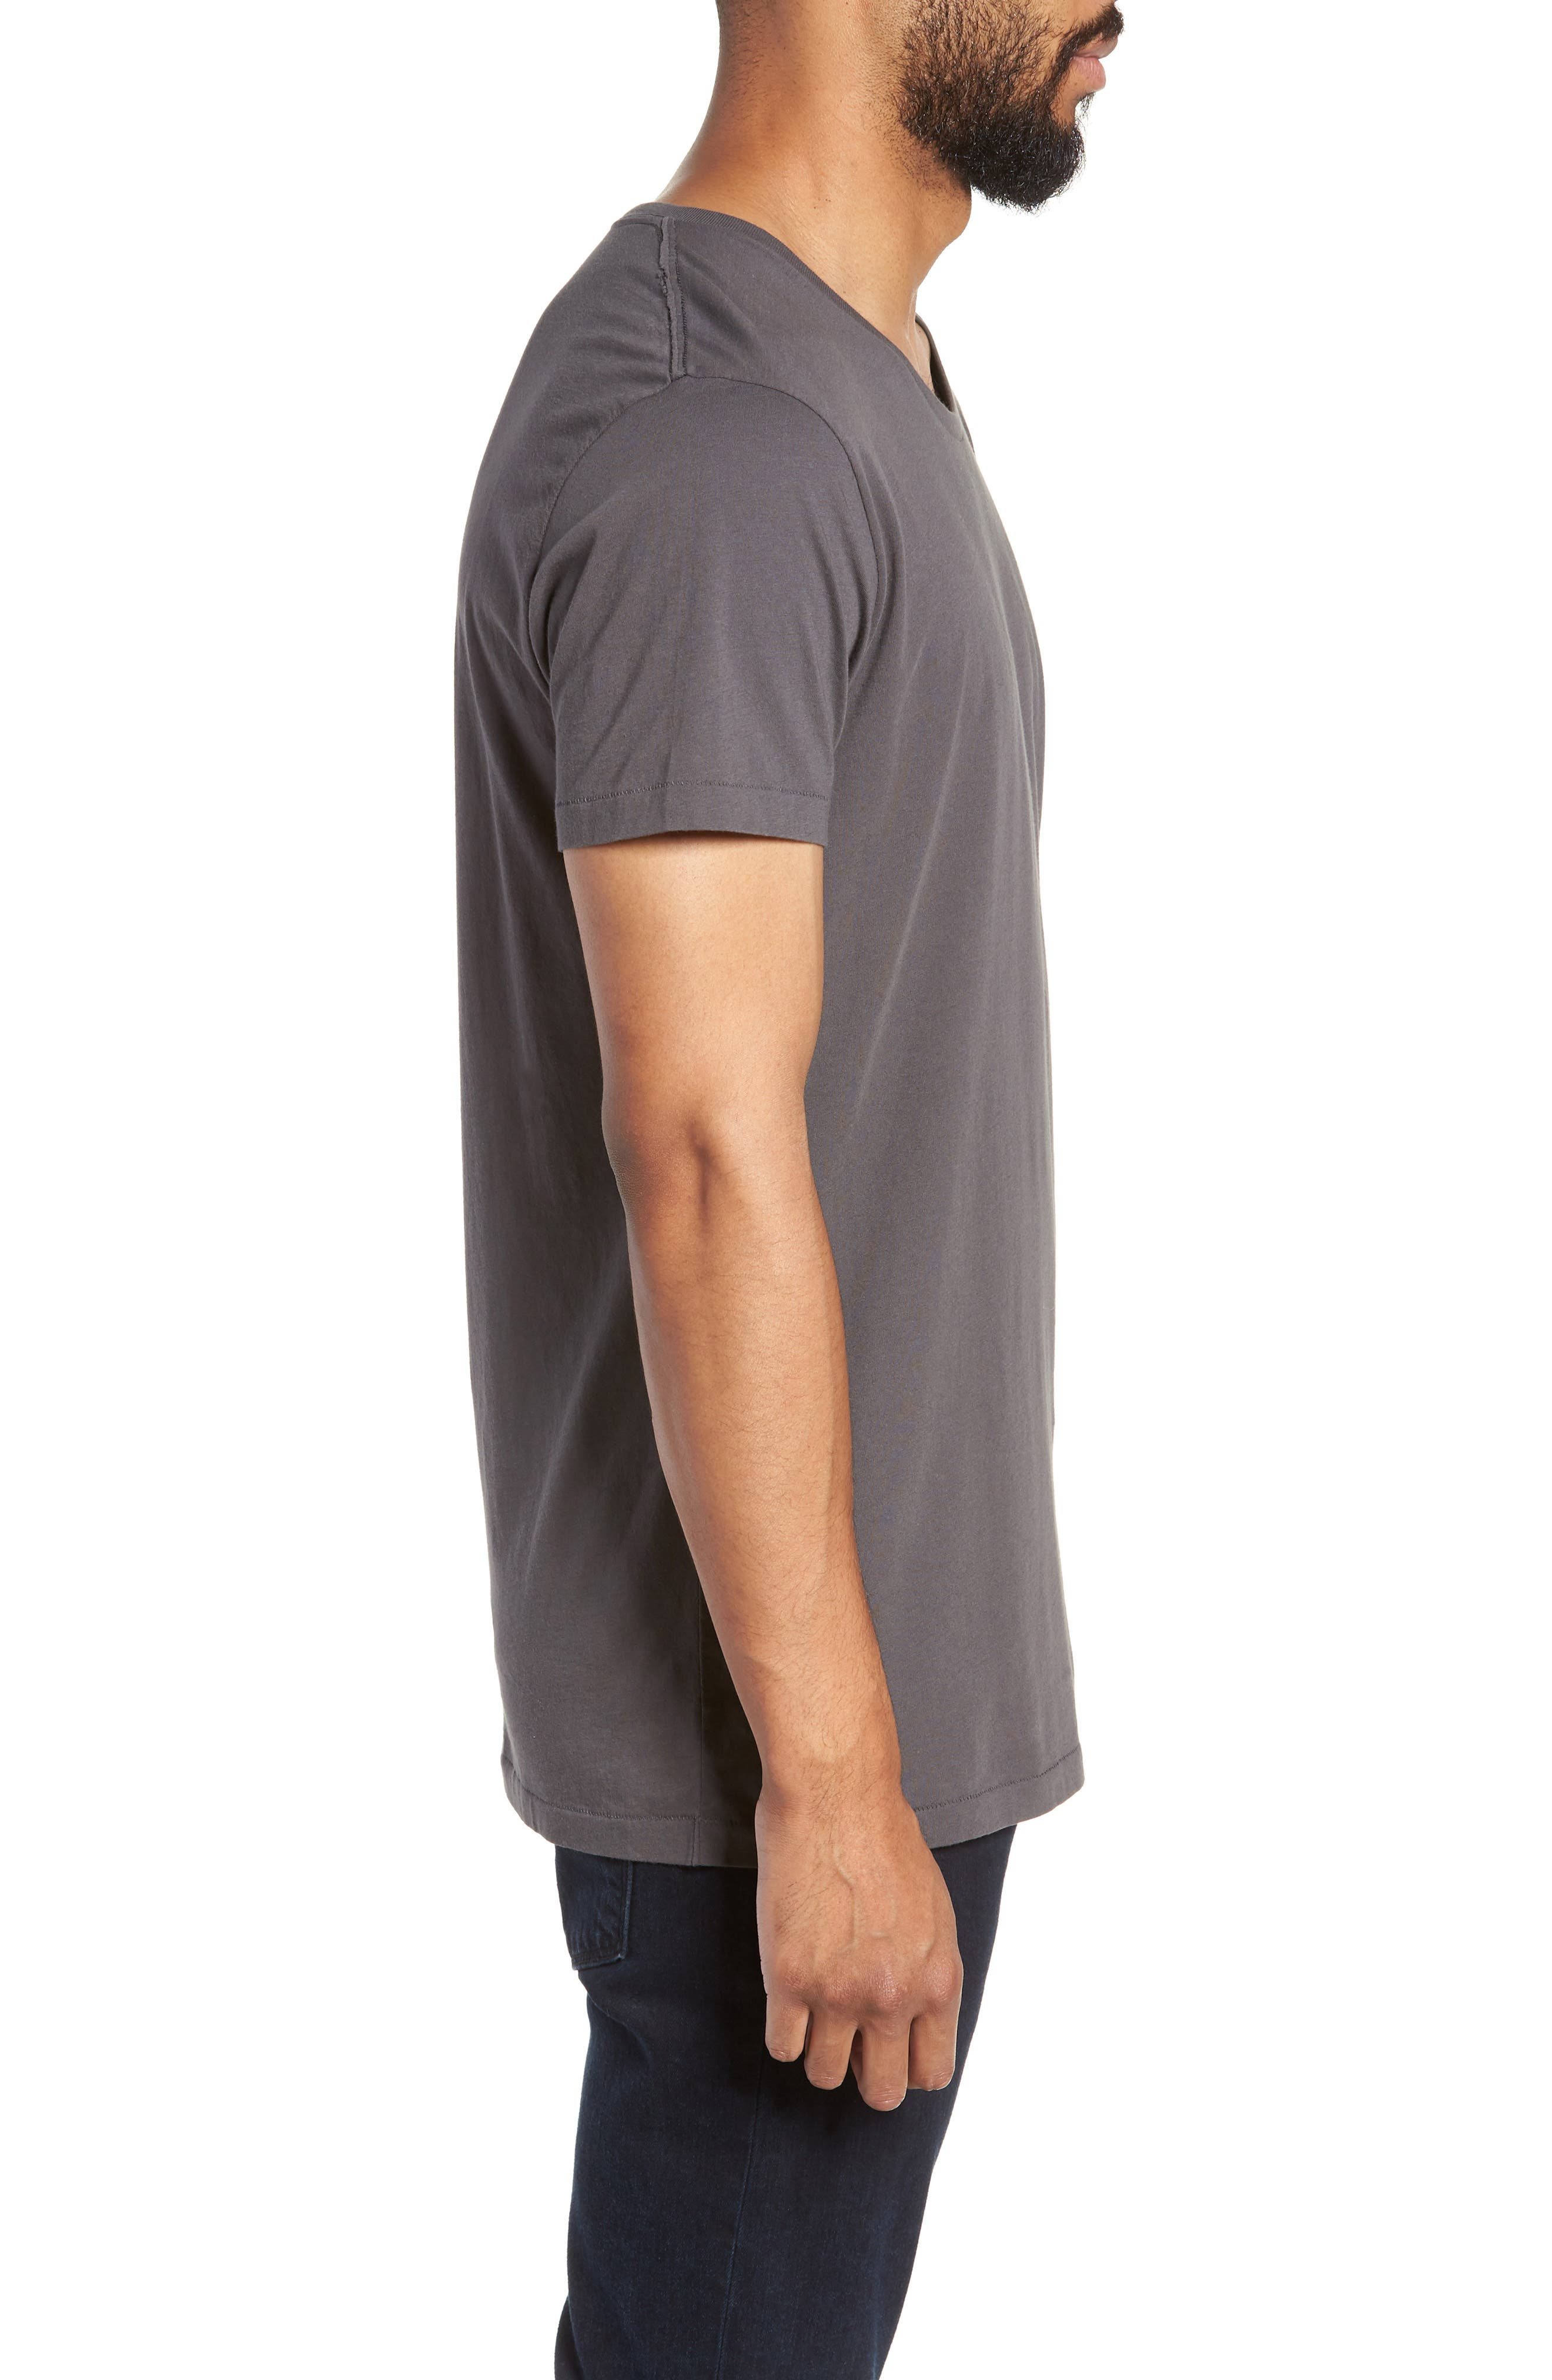 Alias Relaxed Fit T-Shirt,                             Alternate thumbnail 3, color,                             DARK ANTRACITE